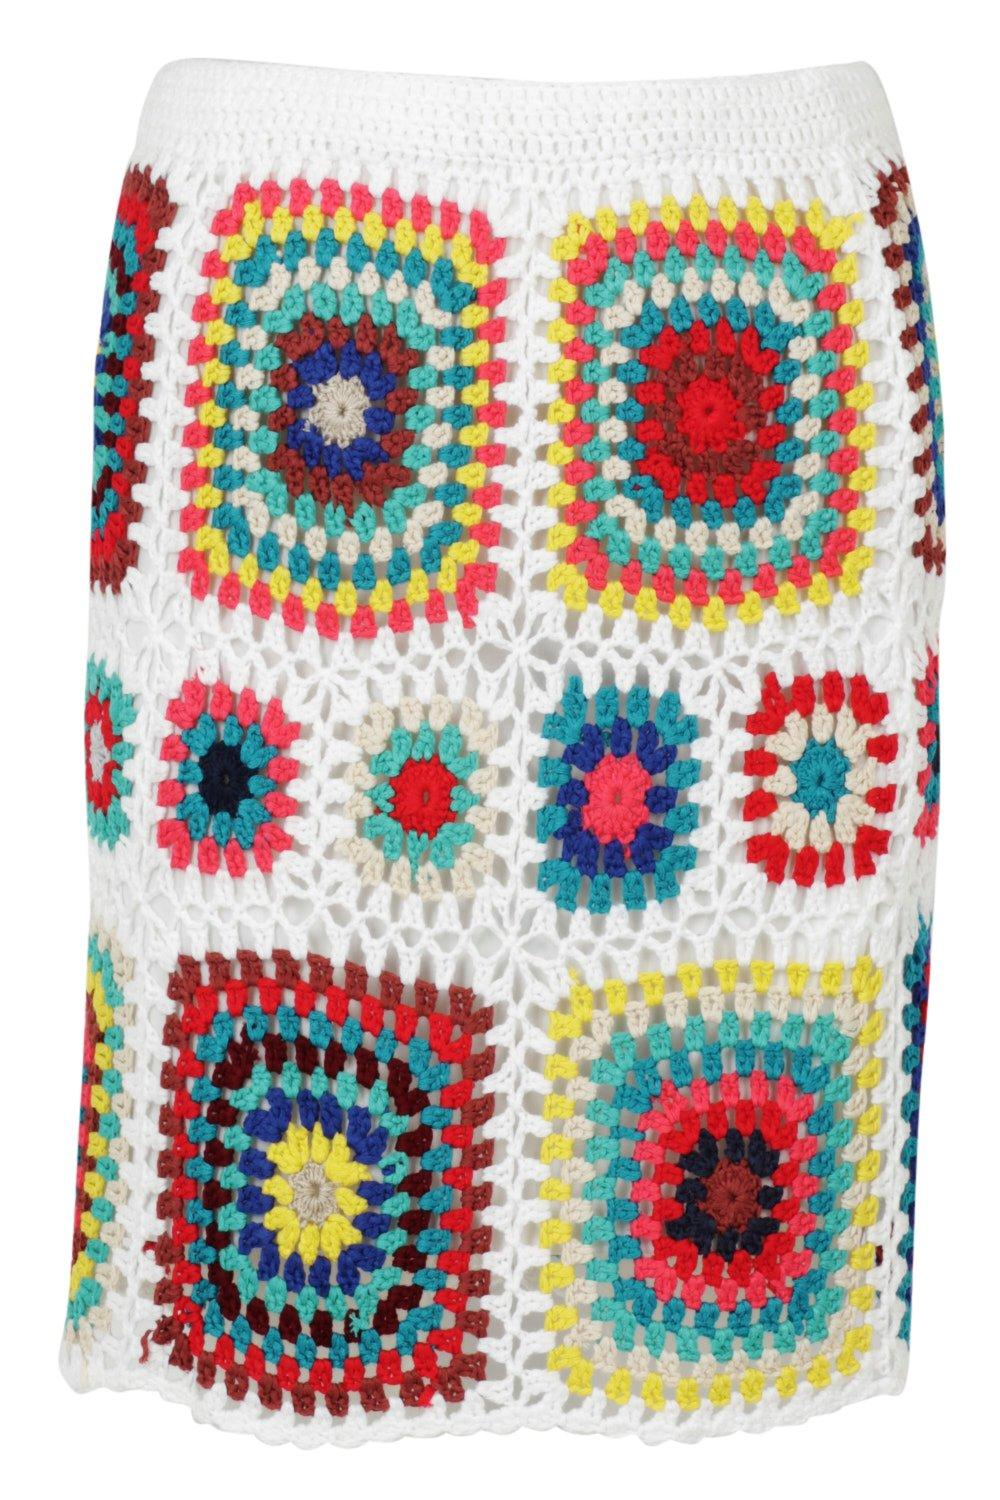 Seven Wonders Crochet Skirt | Shop Clothes at Nasty Gal!